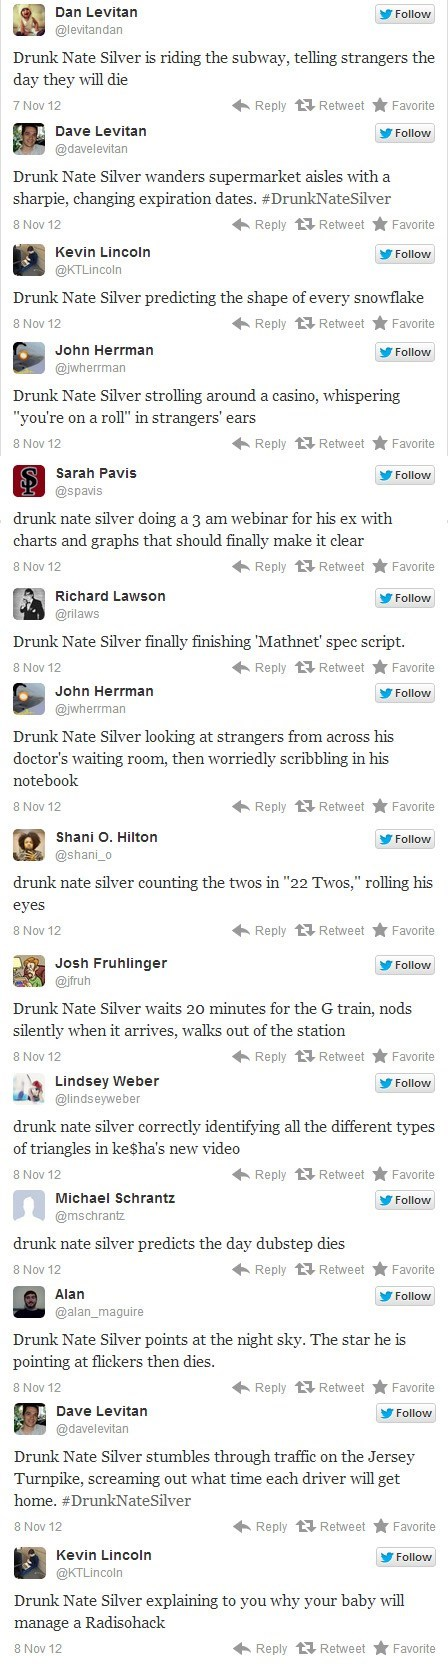 twitter predictions polls drunk nate silver meme Statistics accurate